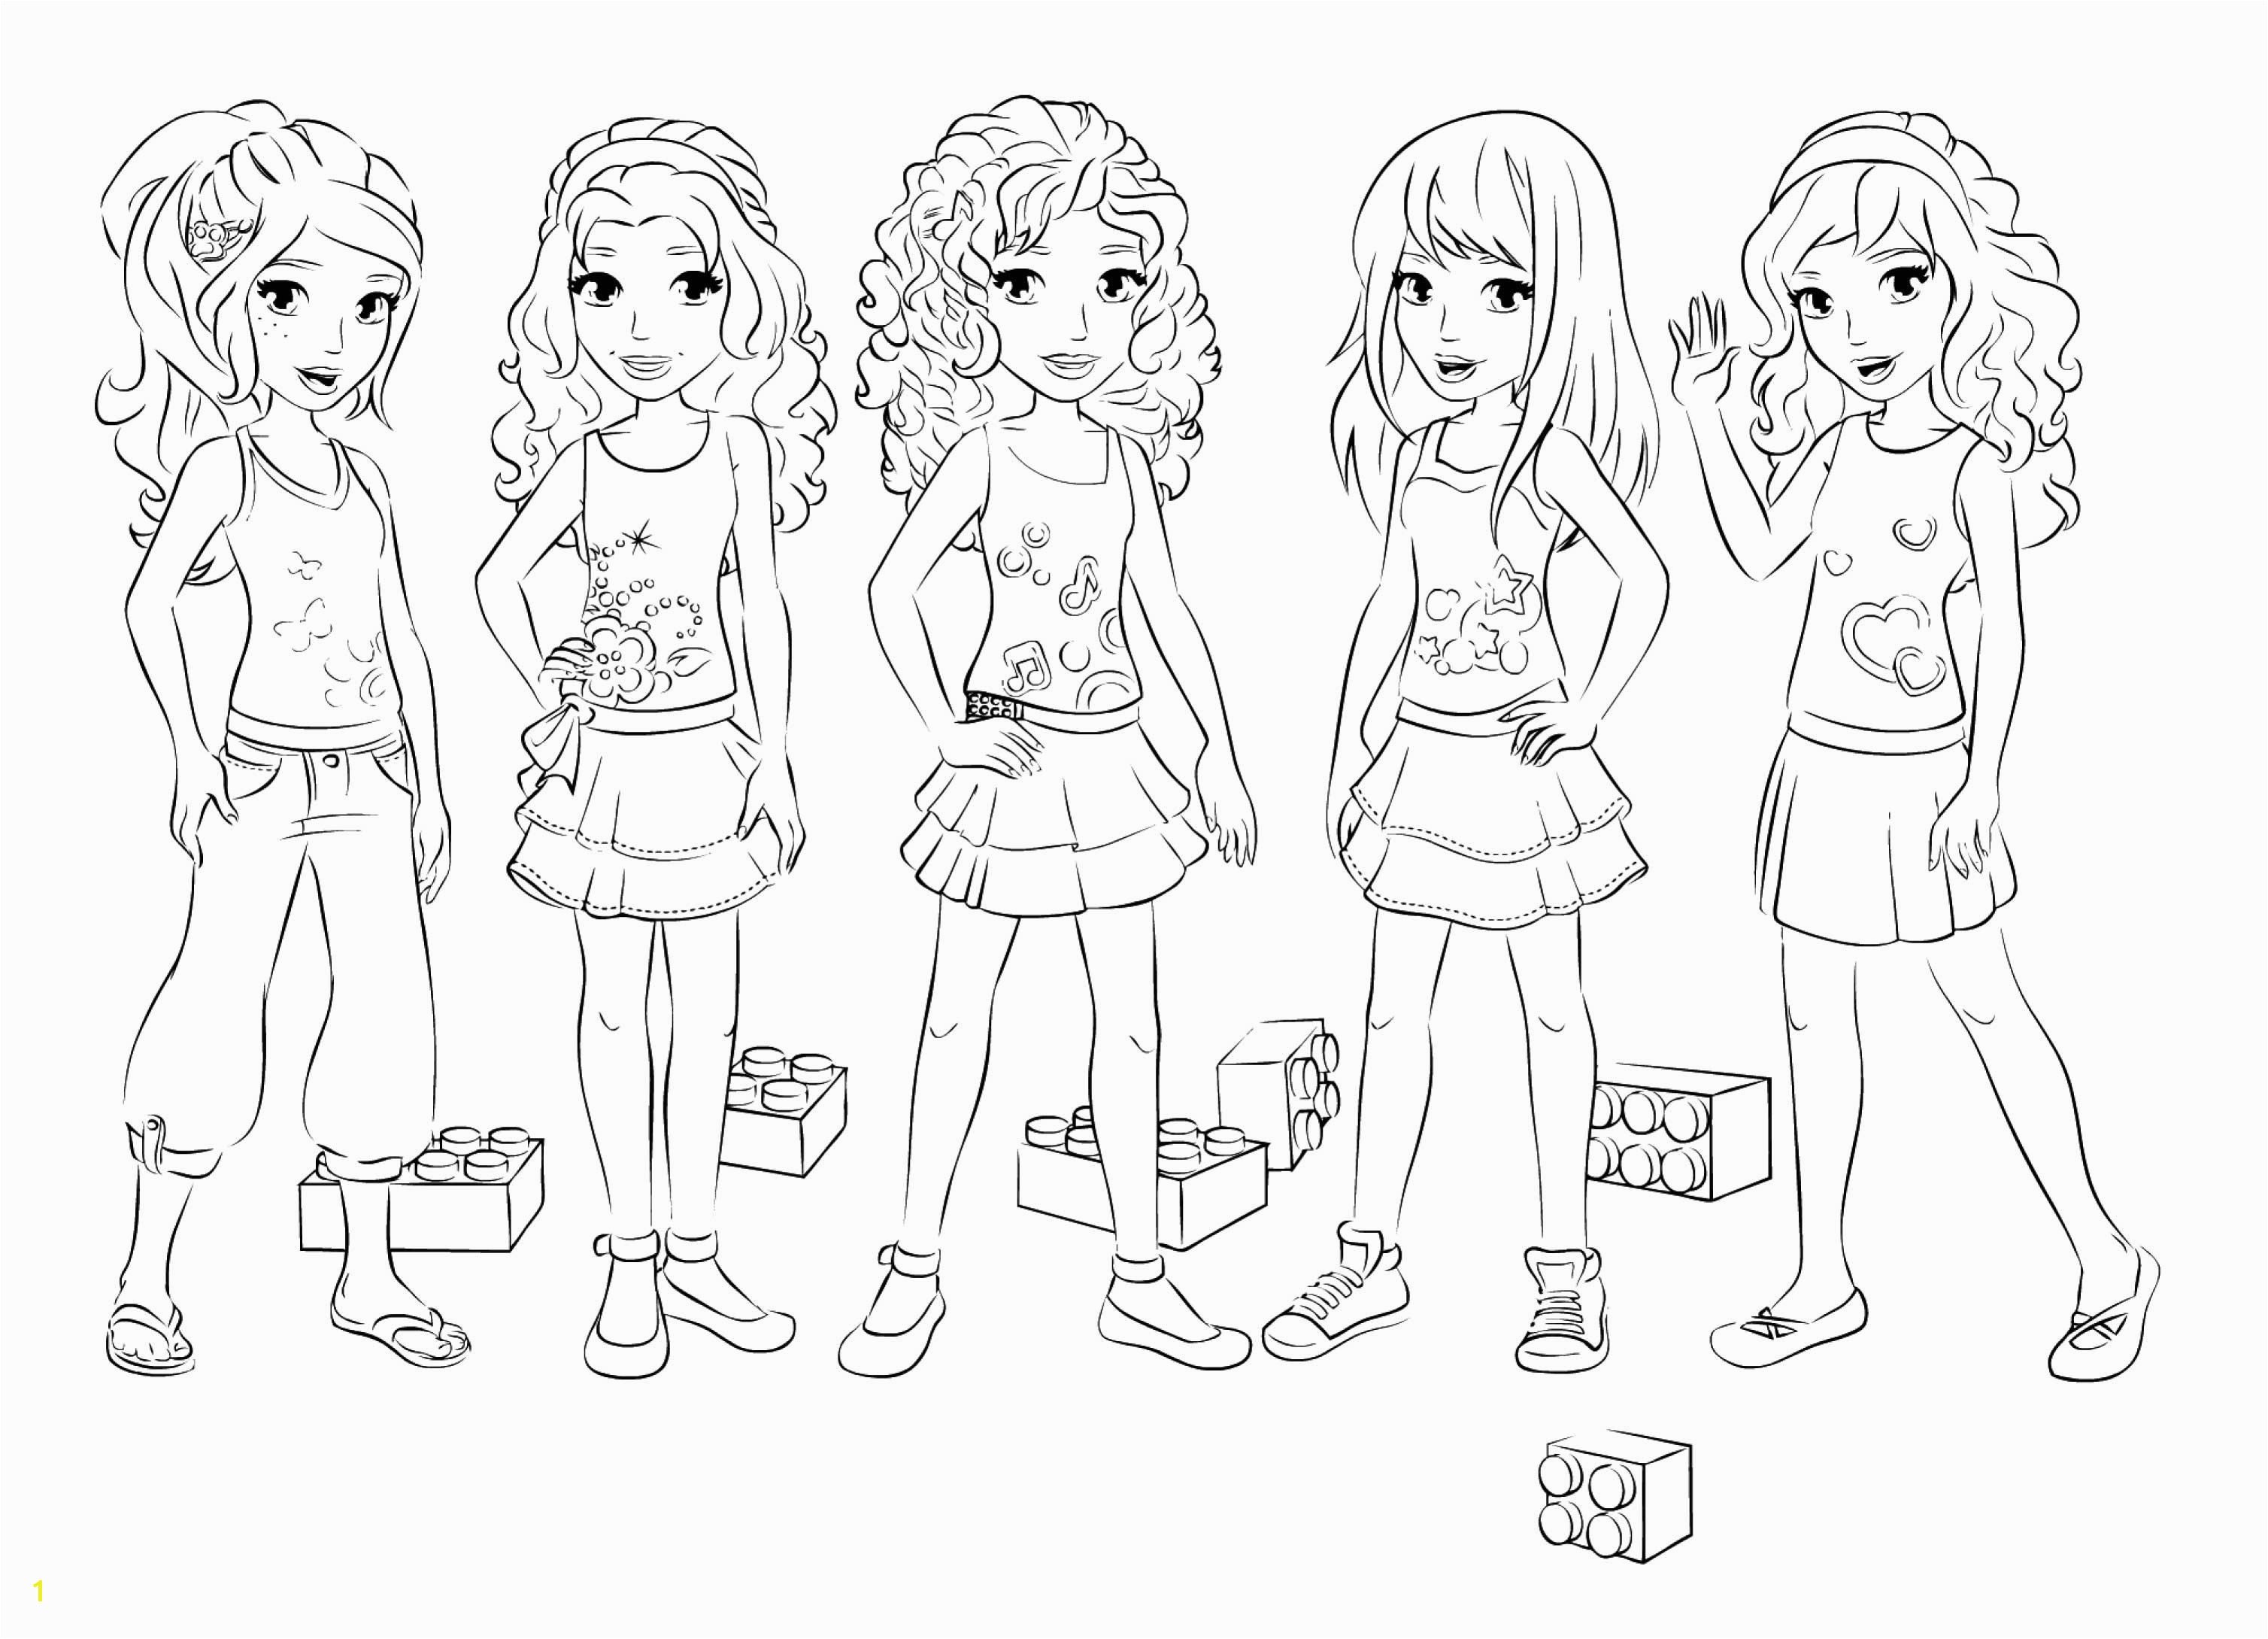 Coloring Page Printable Kleurplaat Colouring Page LEGO Friends